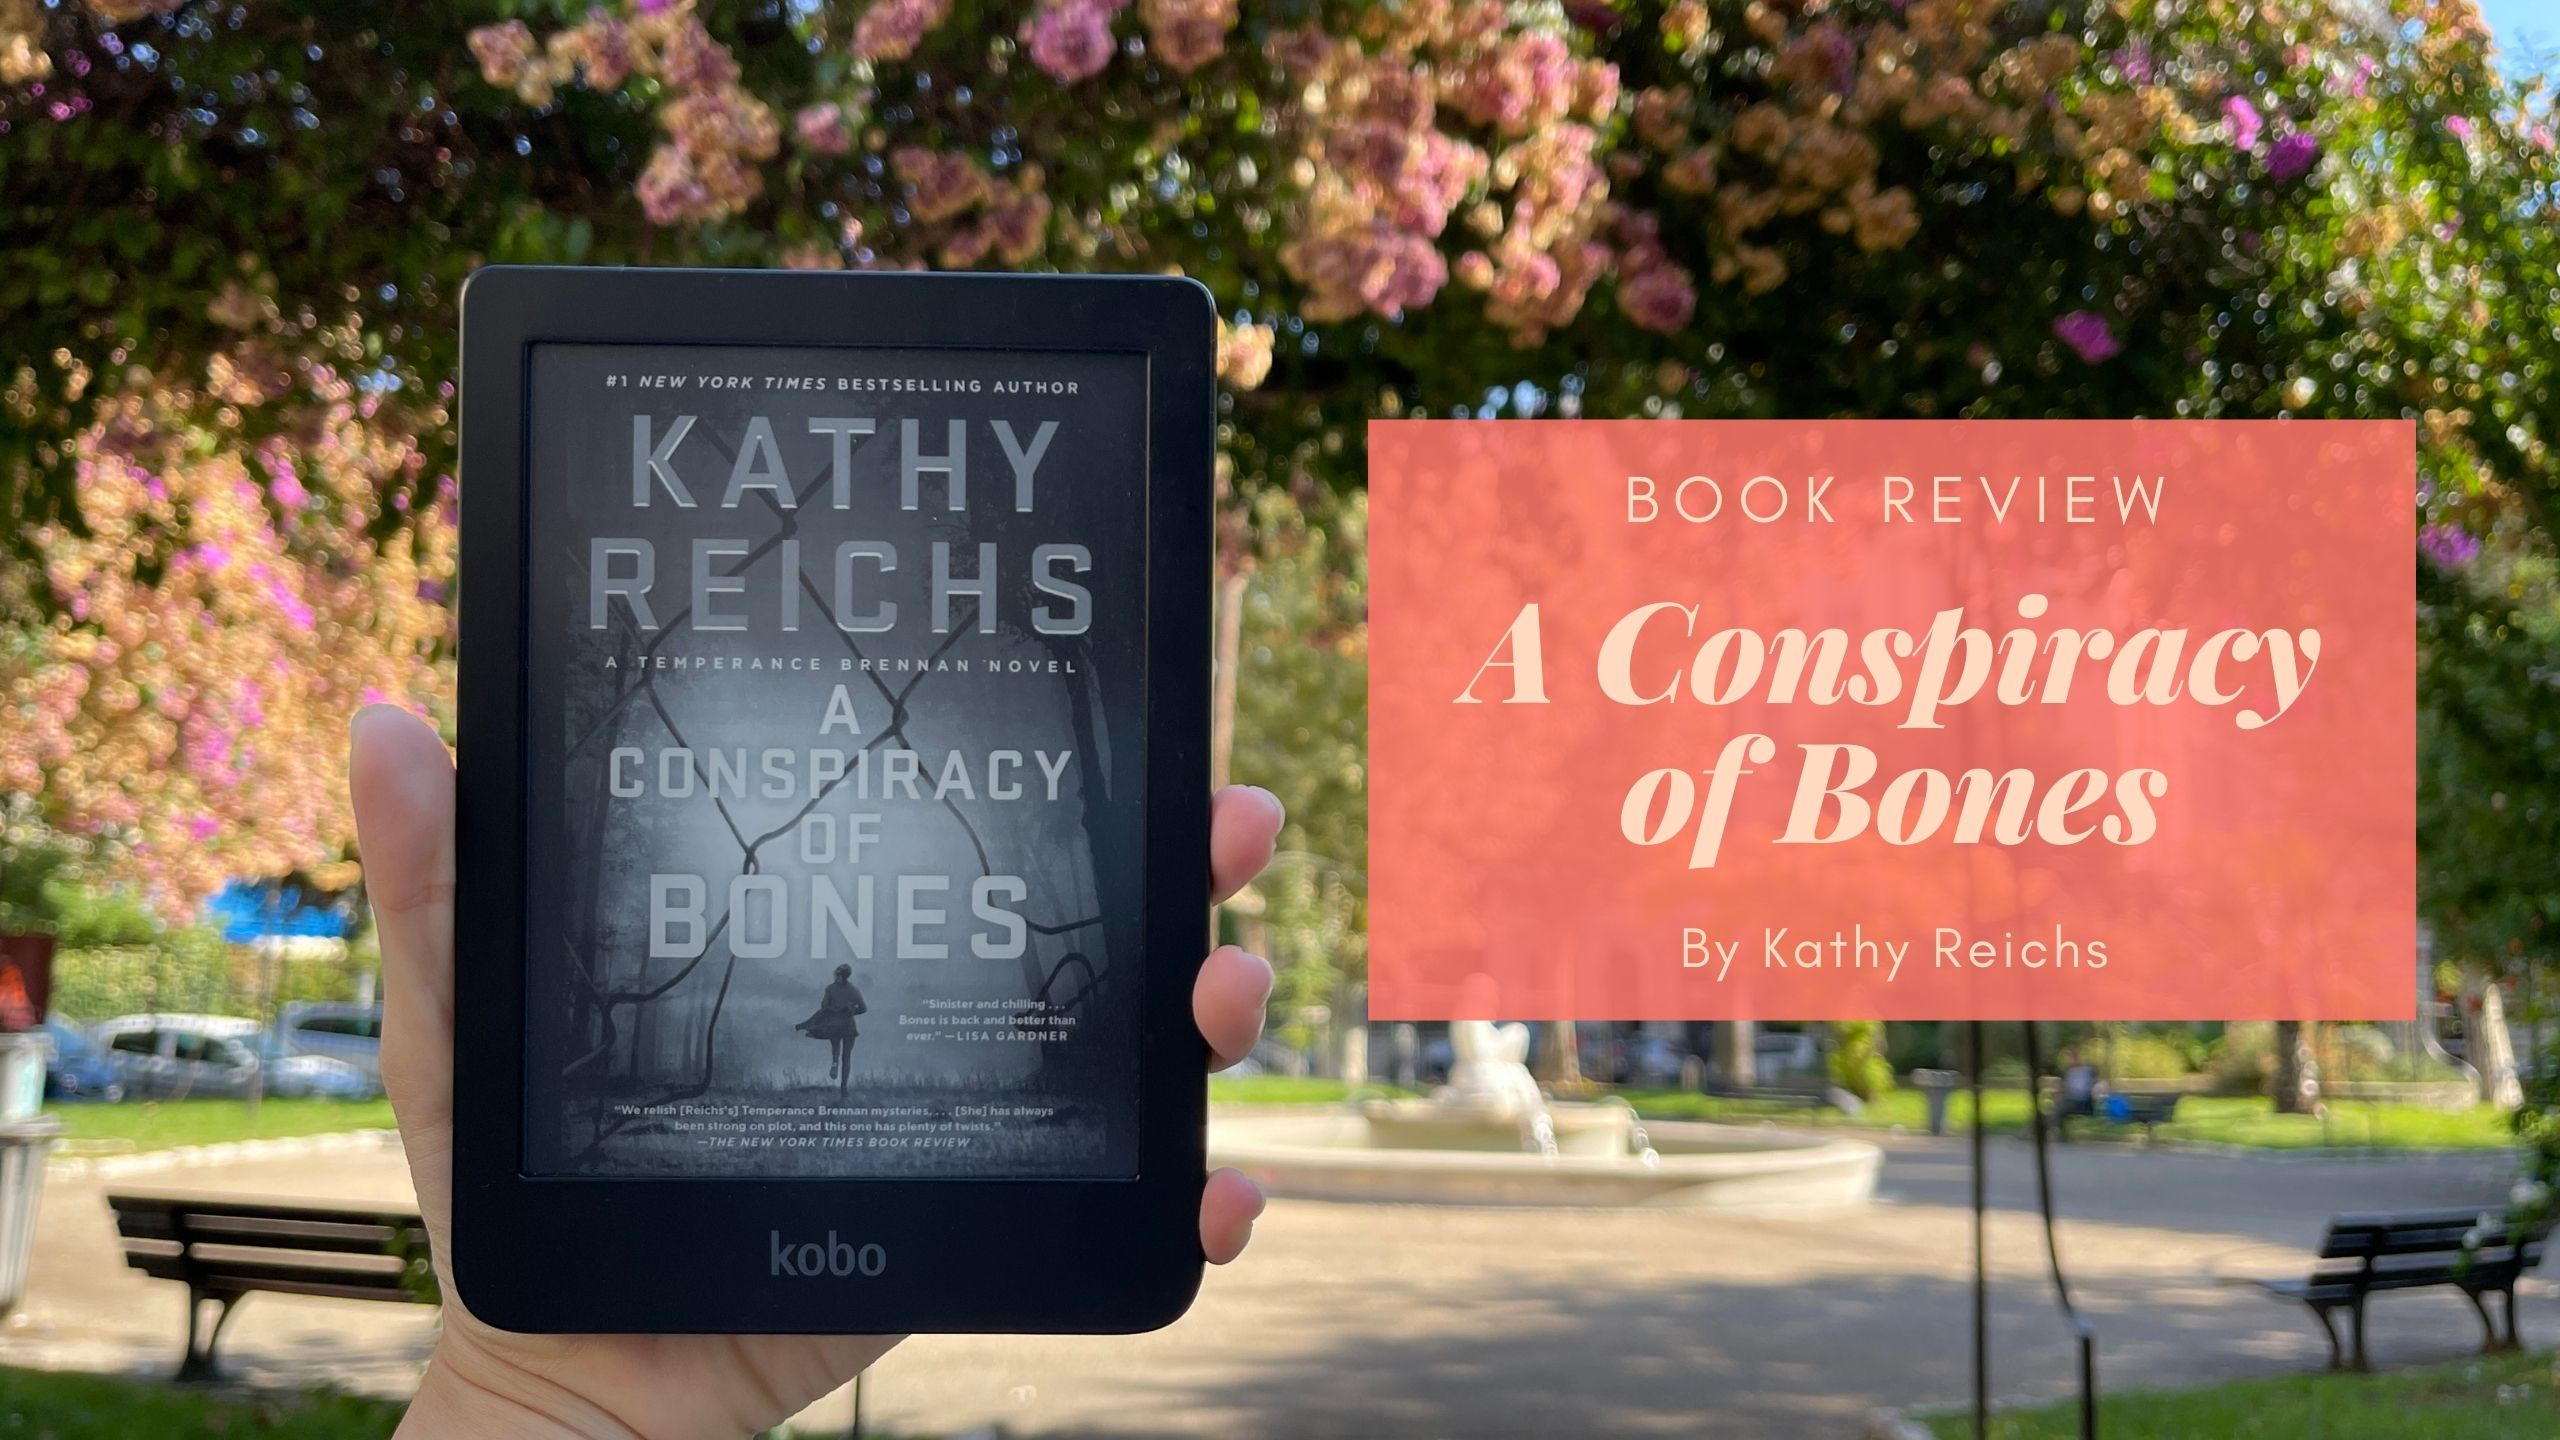 Book Review: A Conspiracy of Bones by Kathy Reichs